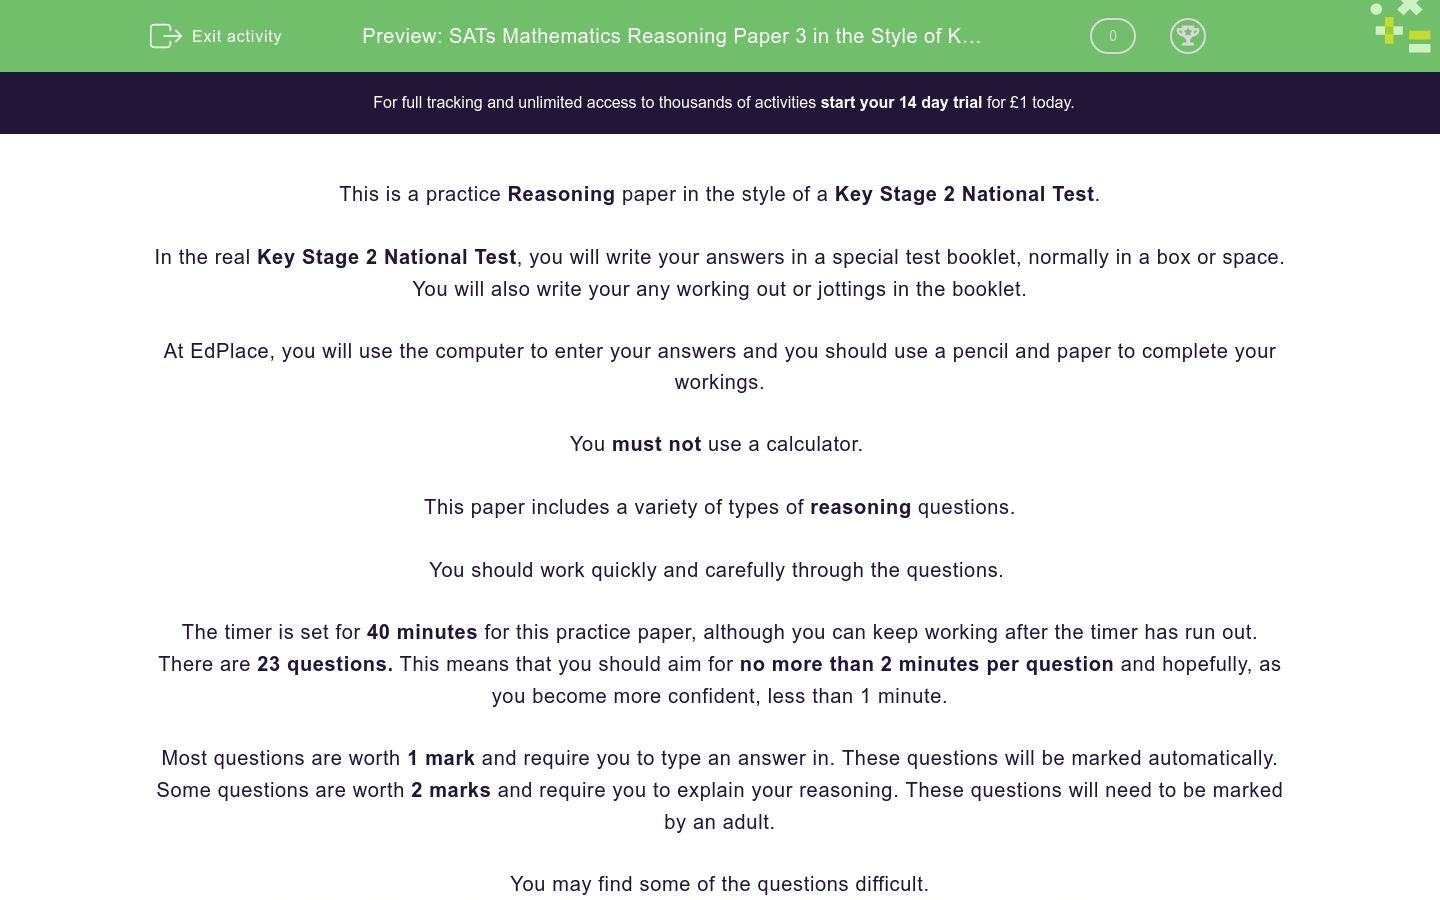 'SATs Mathematics Reasoning Paper 3 in the Style of Key Stage 2 National Tests (Practice 2)' worksheet